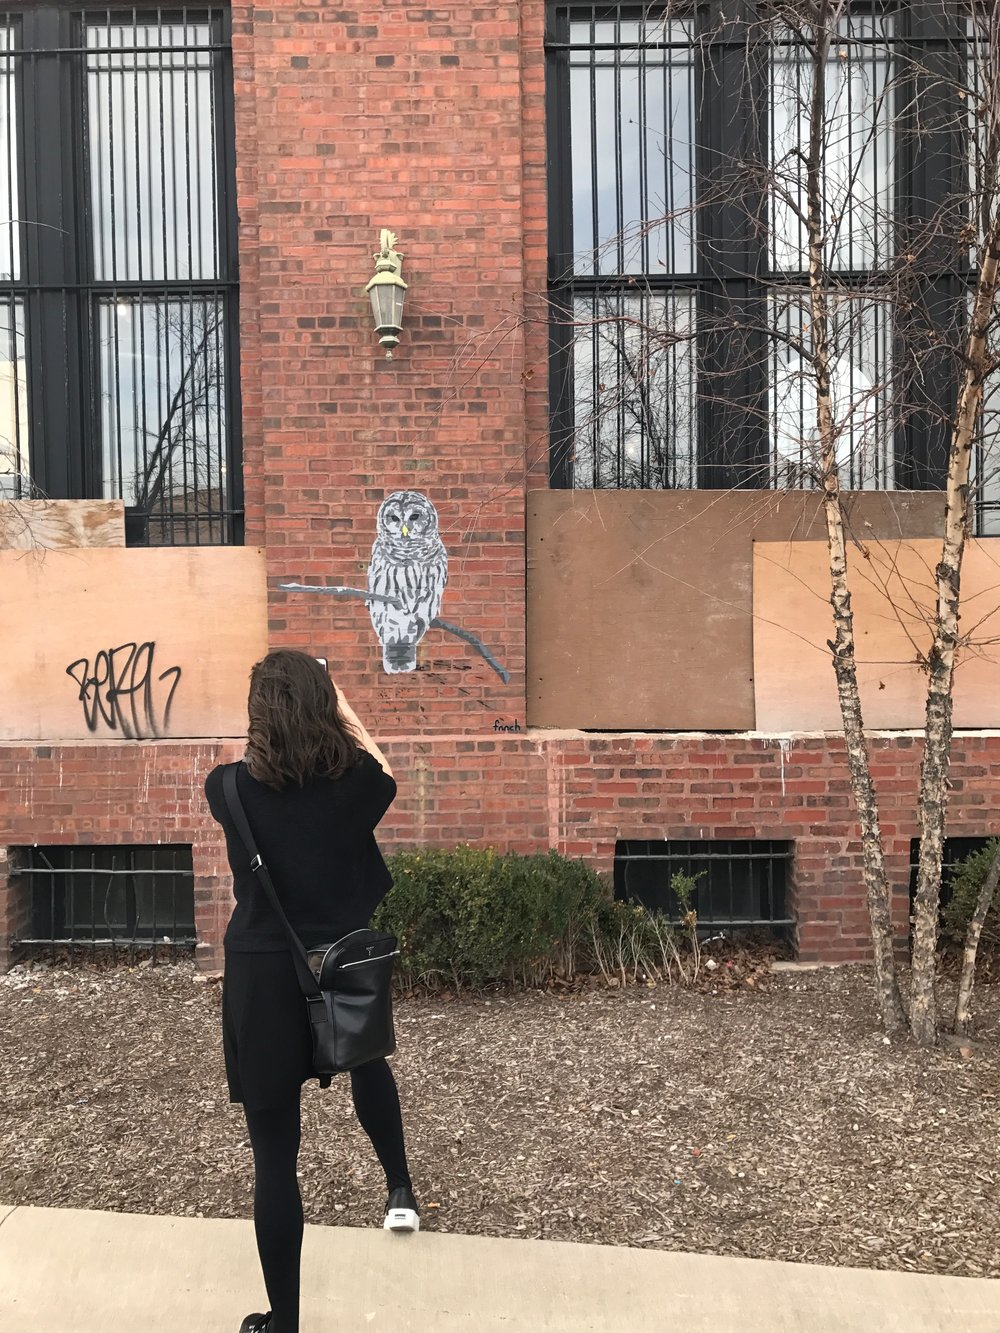 Lizy snaps an owl, also by fnnch